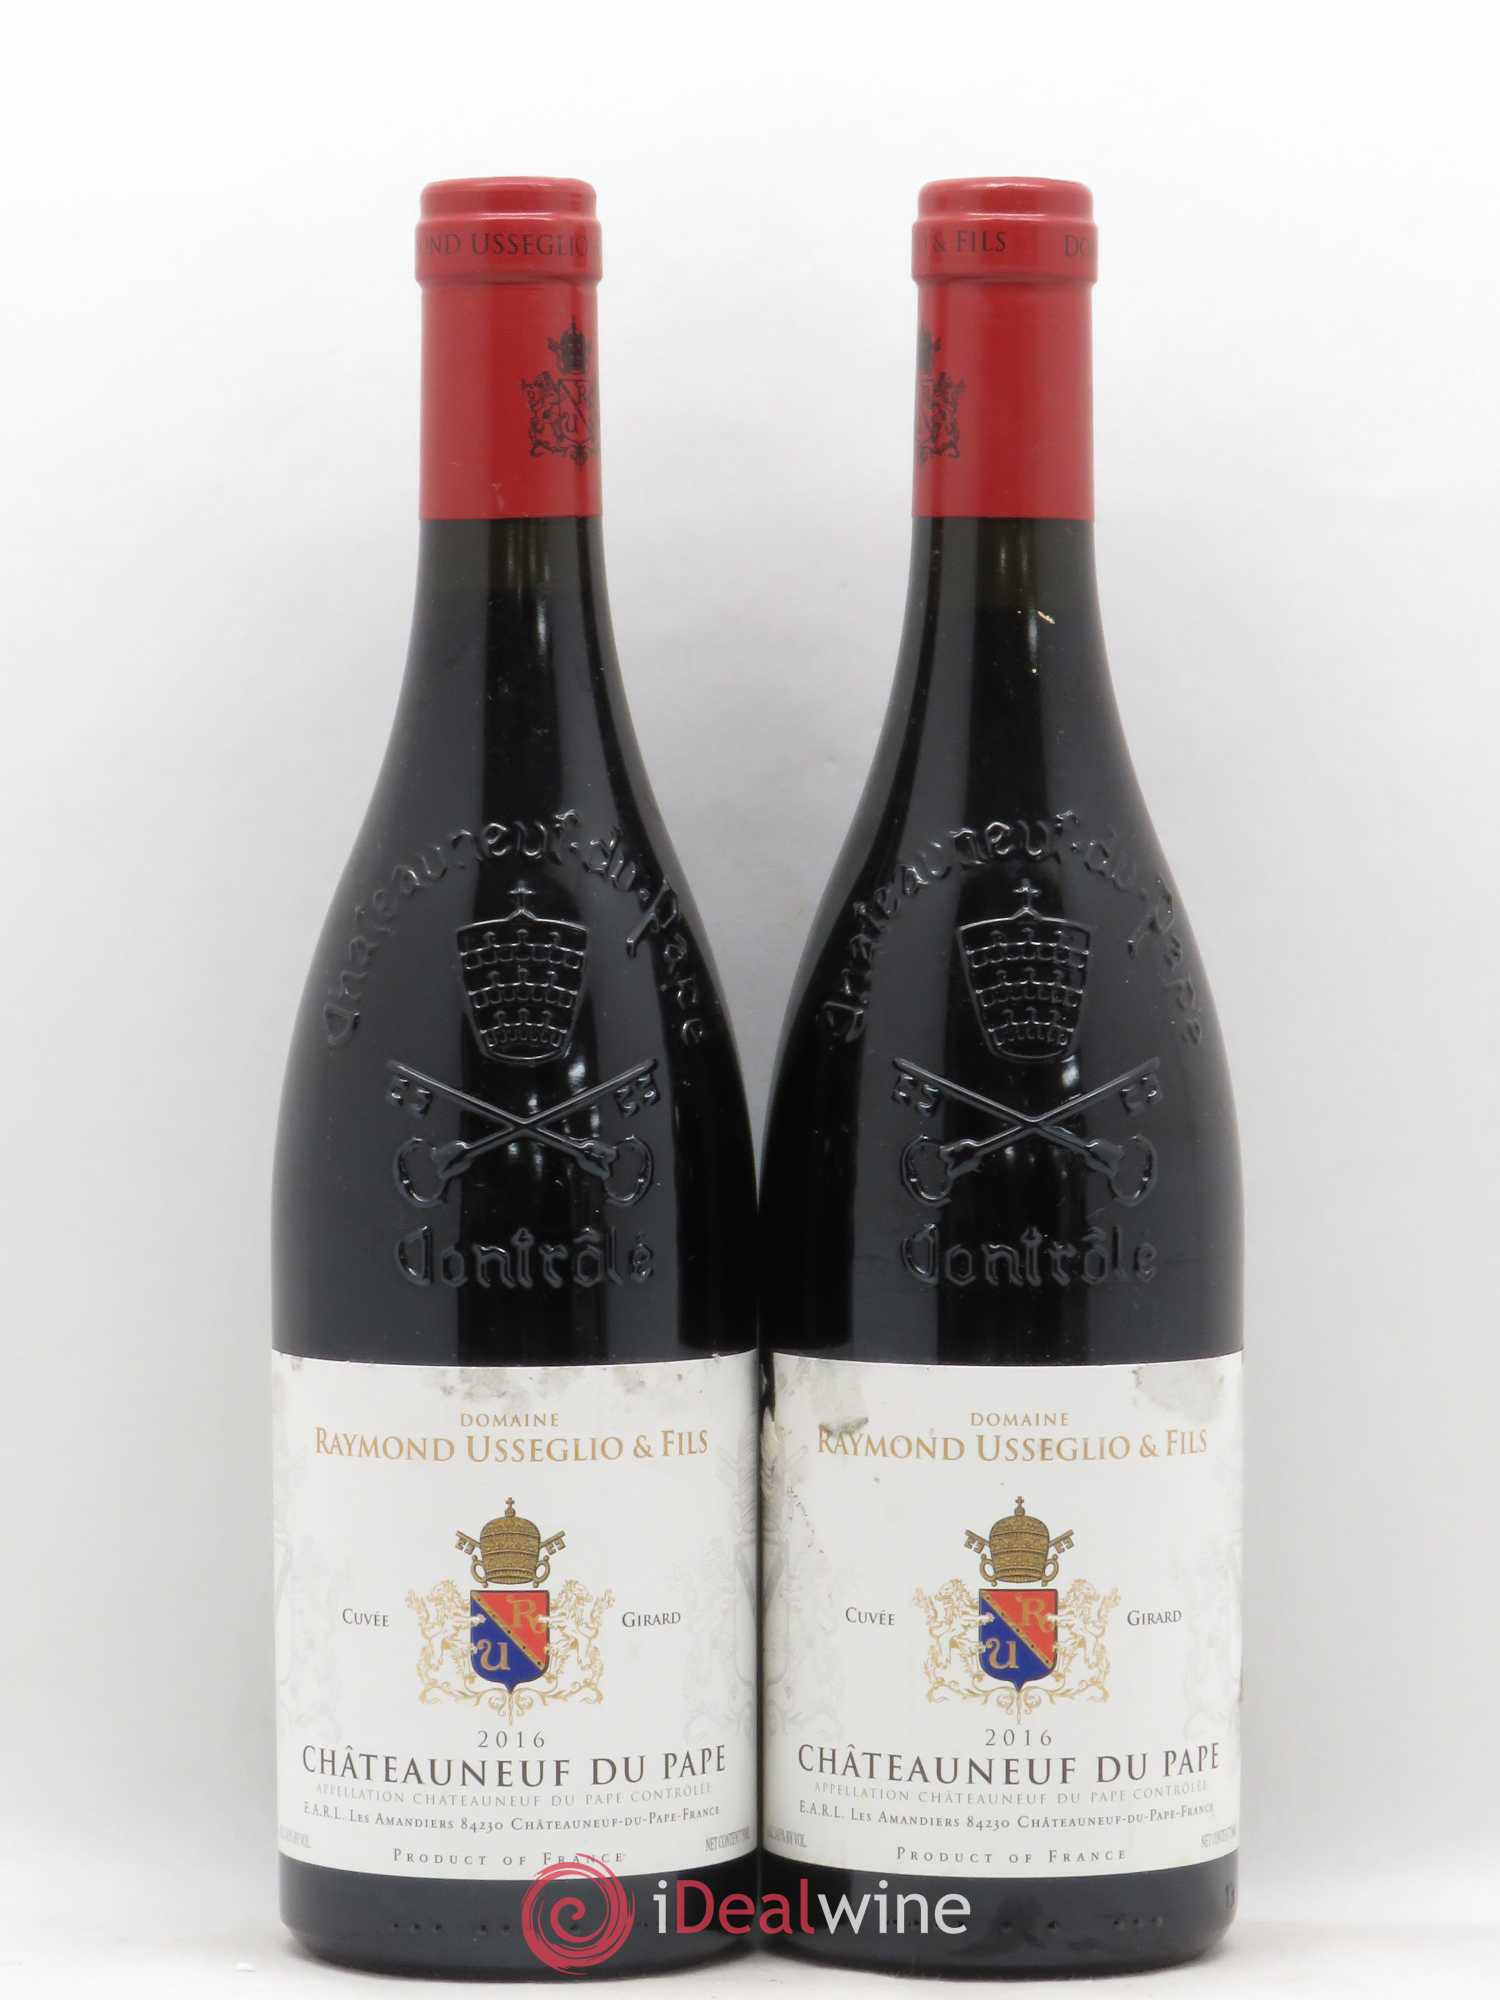 Châteauneuf-du-Pape Raymond Usseglio (Domaine) Raymond Usseglio & Fils Cuvée Girard (no reserve) 2016 - Lot of 2 Bottles